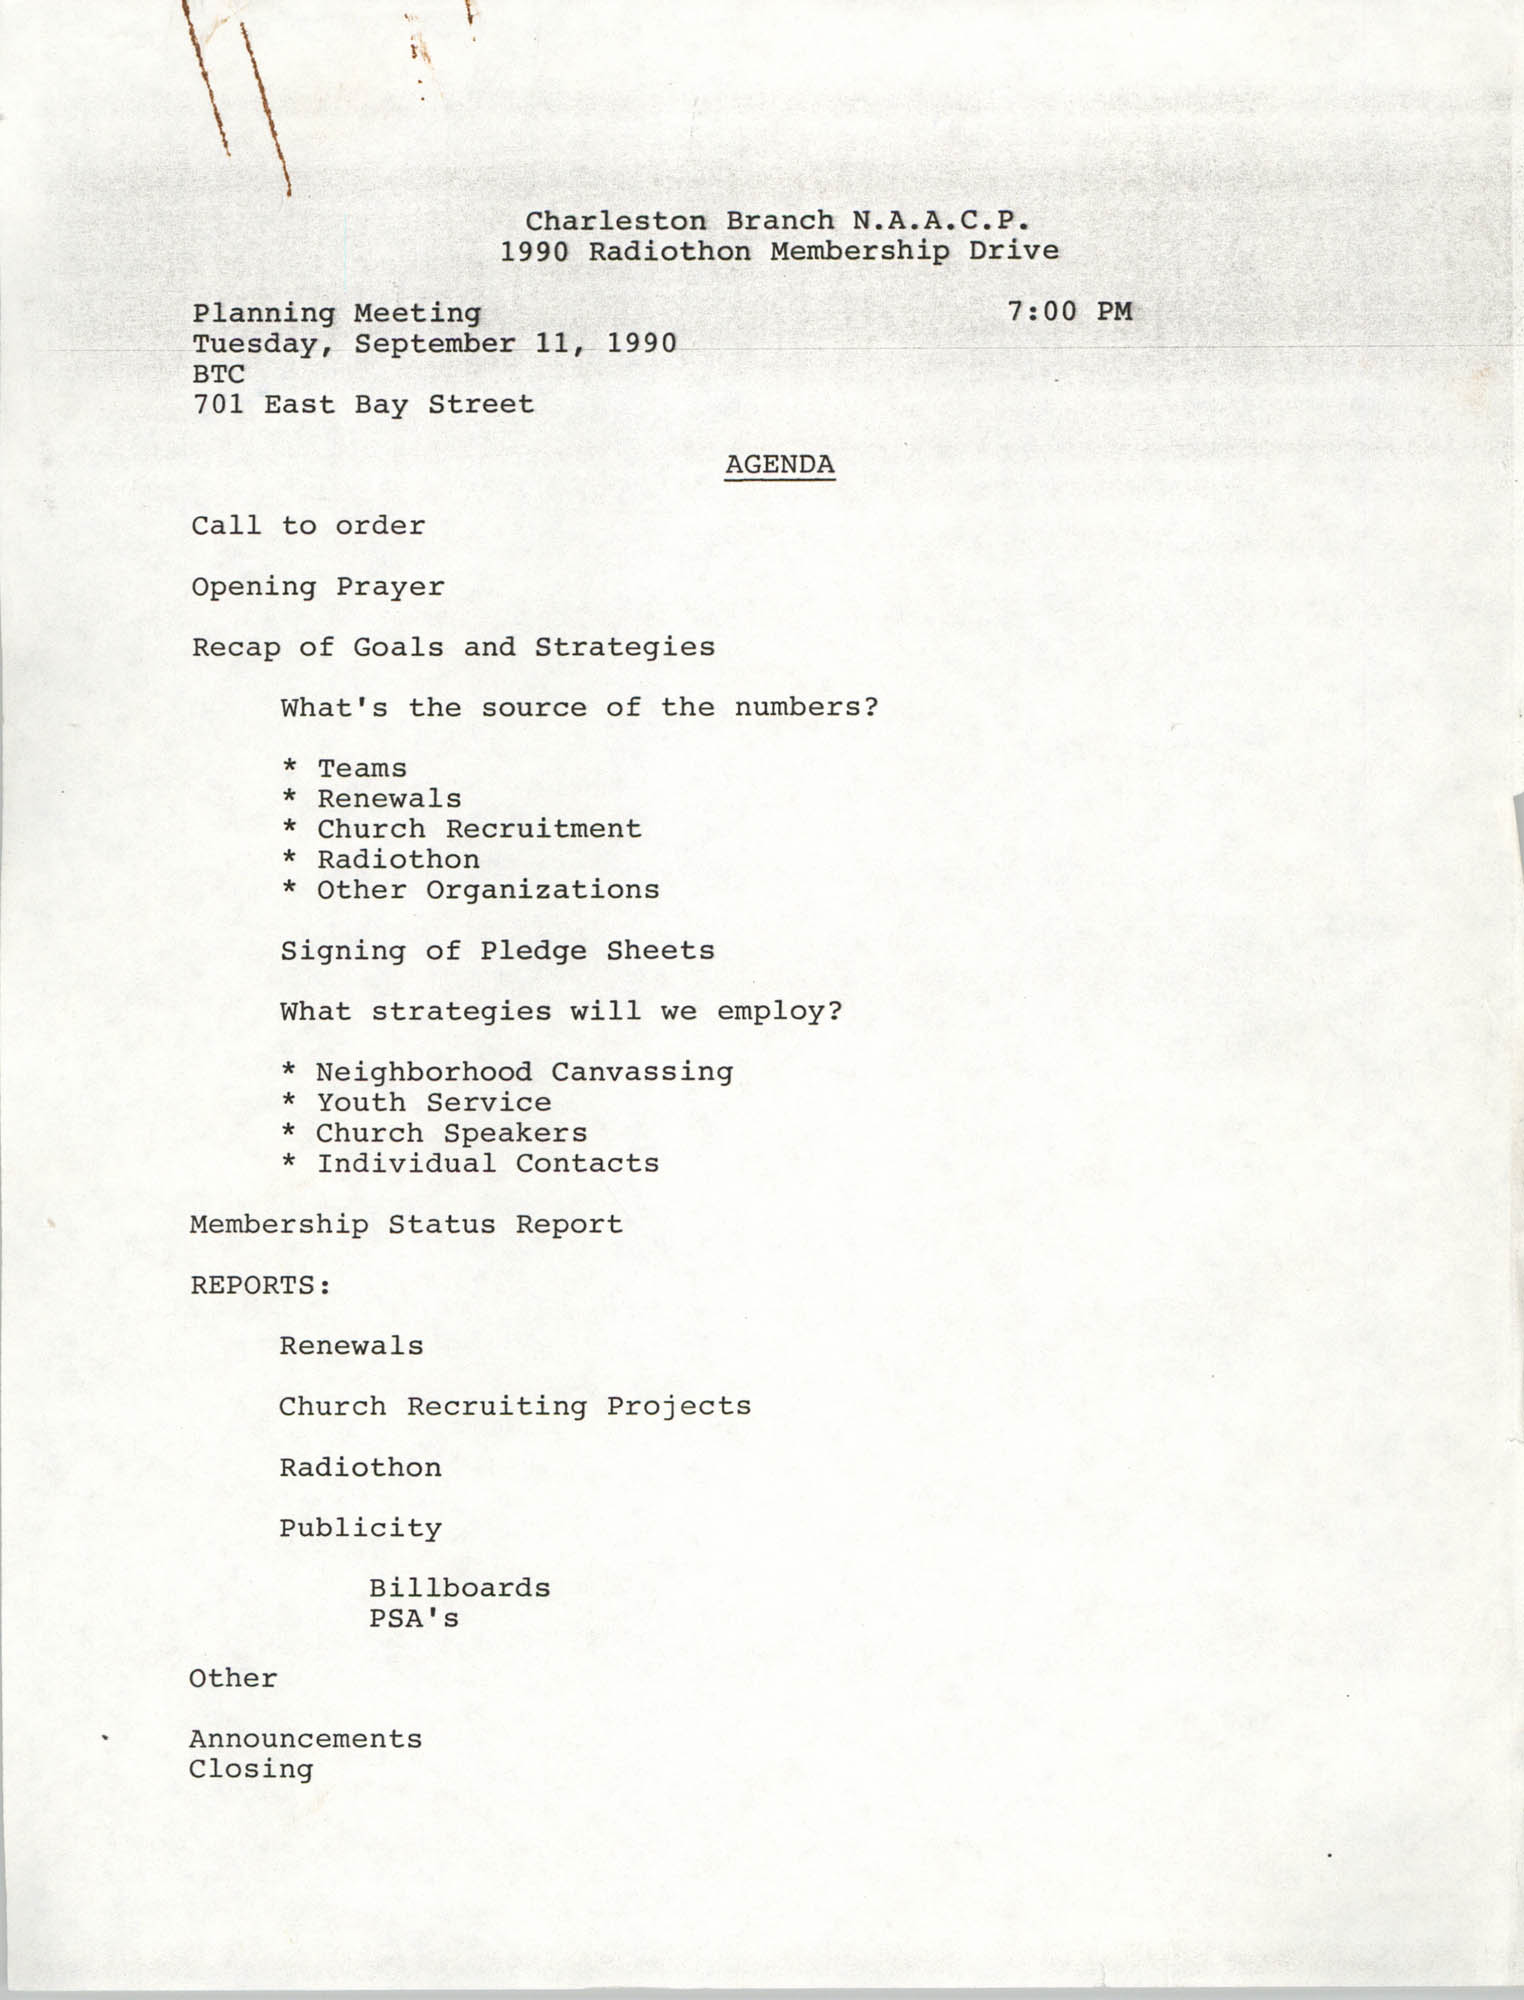 Planning Meeting Agenda, Radiothon Membership Drive, National Association for the Advancement of Colored People, September 11, 1990